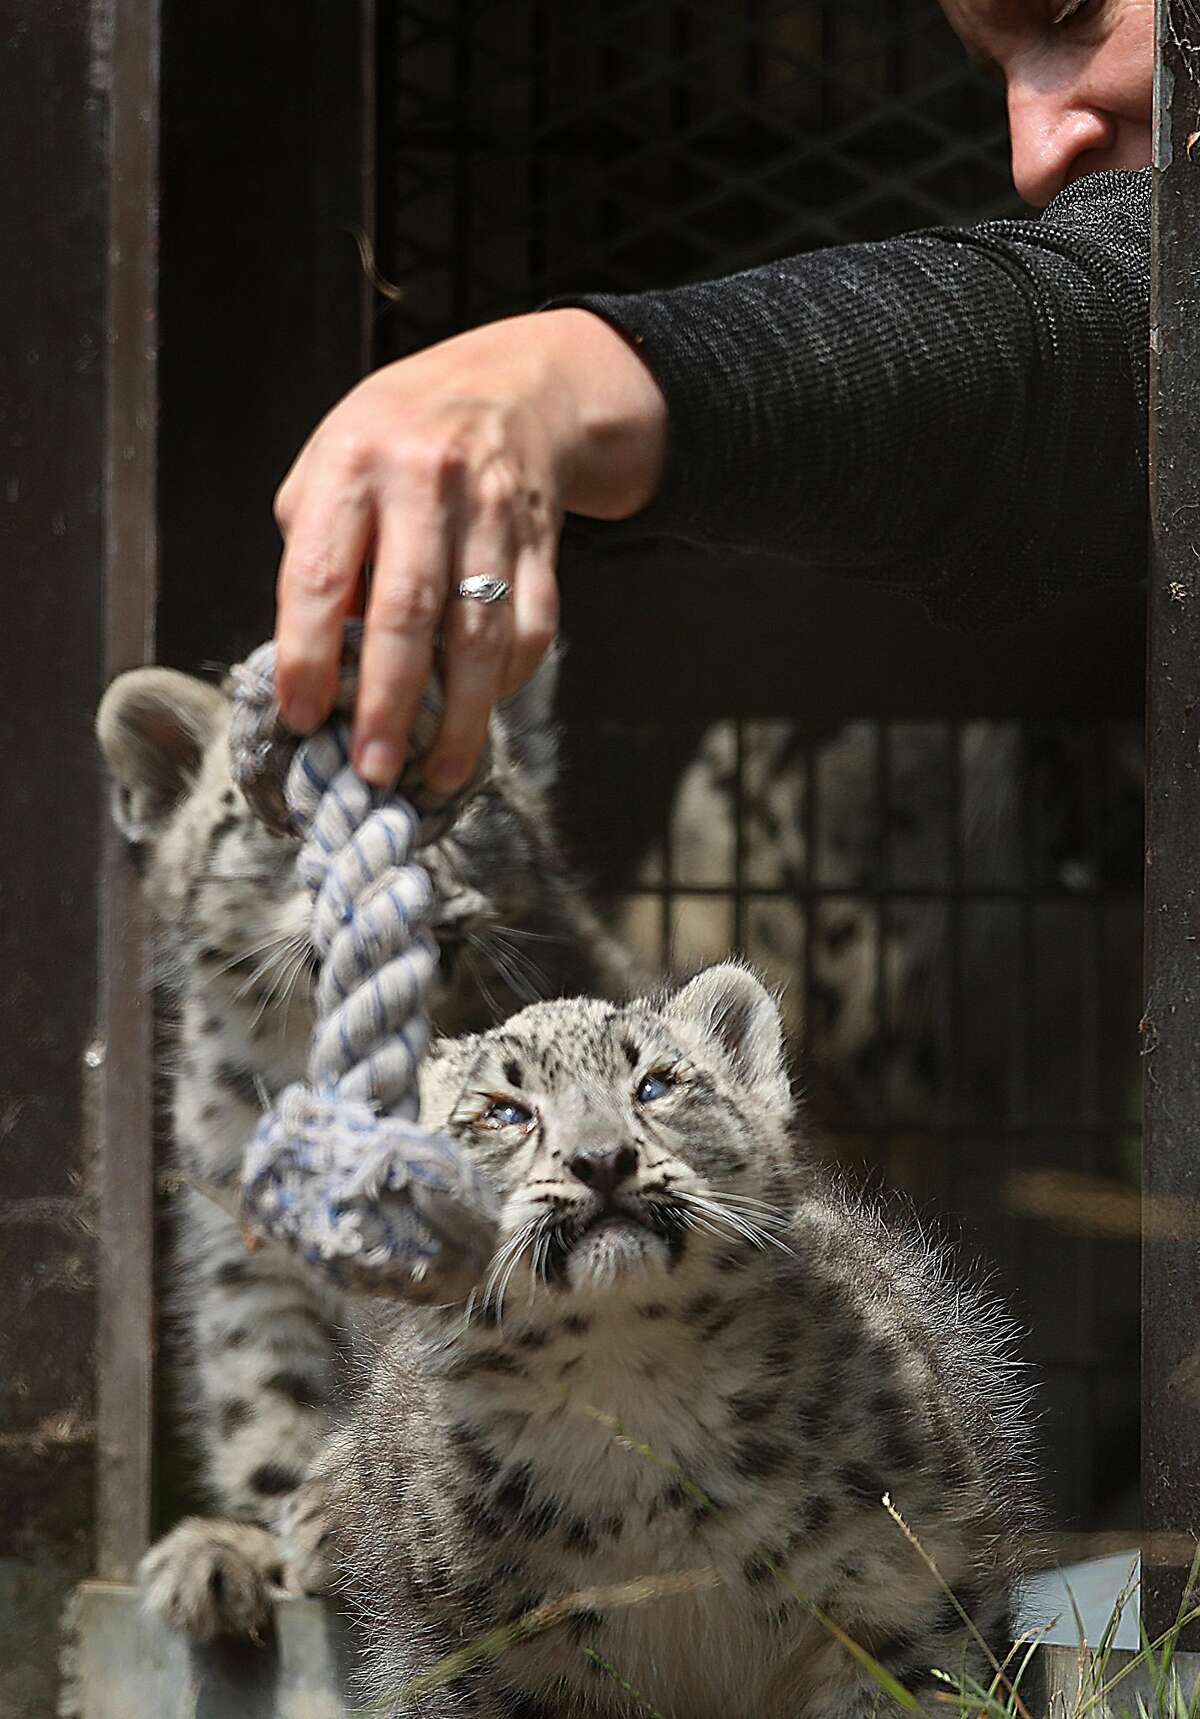 The San Francisco Zoo show two snow leopard cubs on Thursday, Aug. 9, 2018 in San Francisco, Calif.